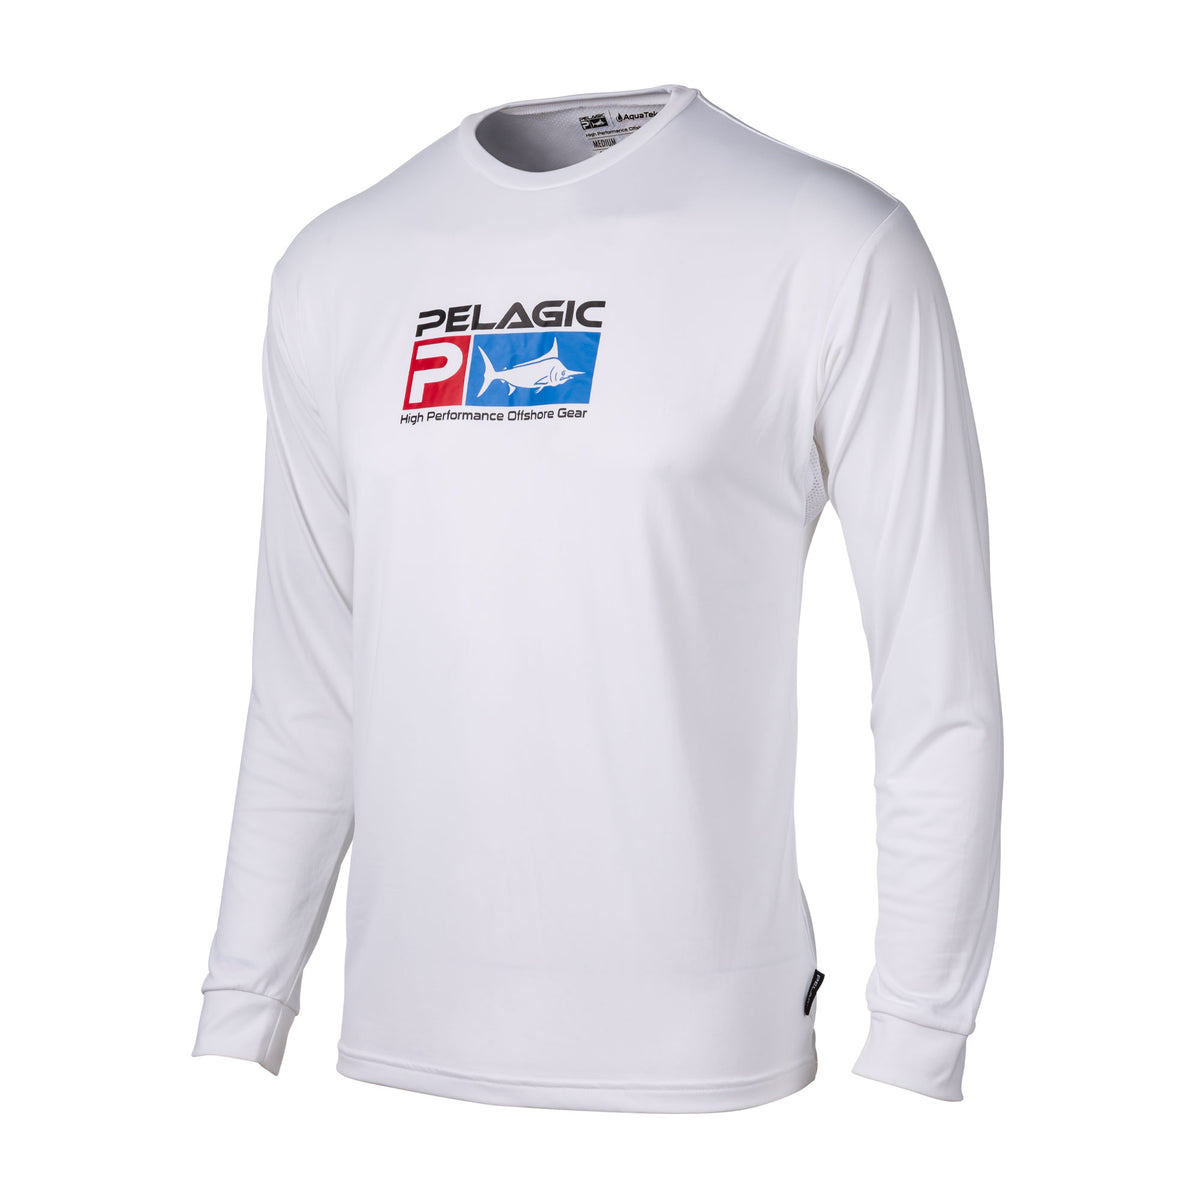 Aquatek Long Sleeve Shirt - Kids Big Image - 1